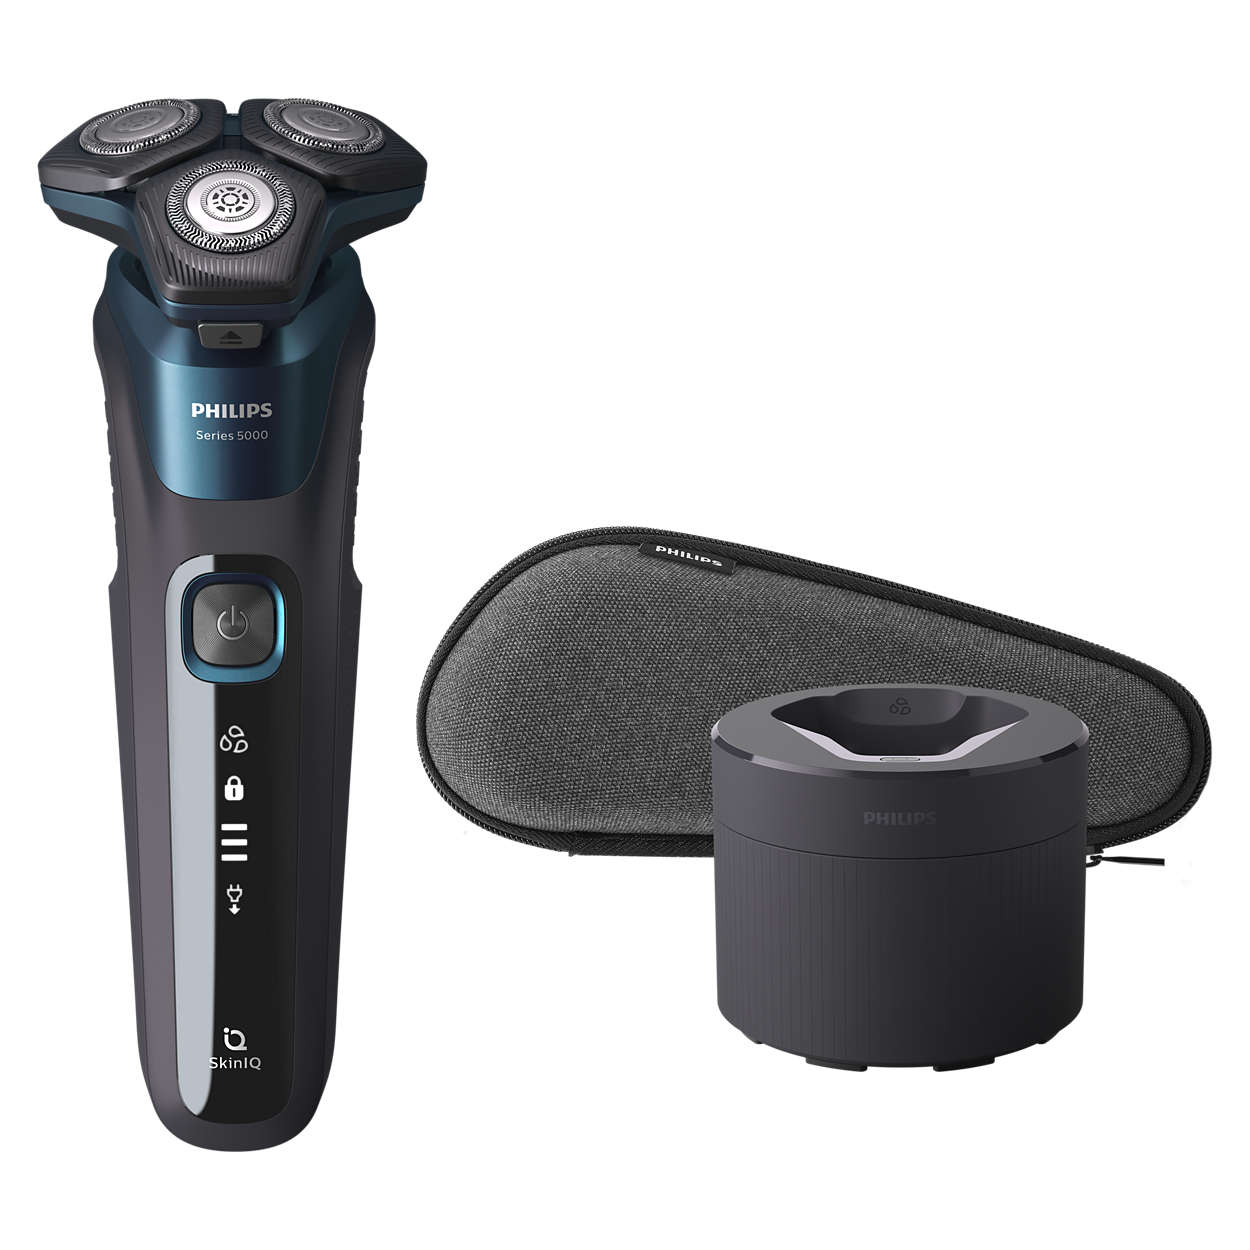 Powerful shave, gentle on skin